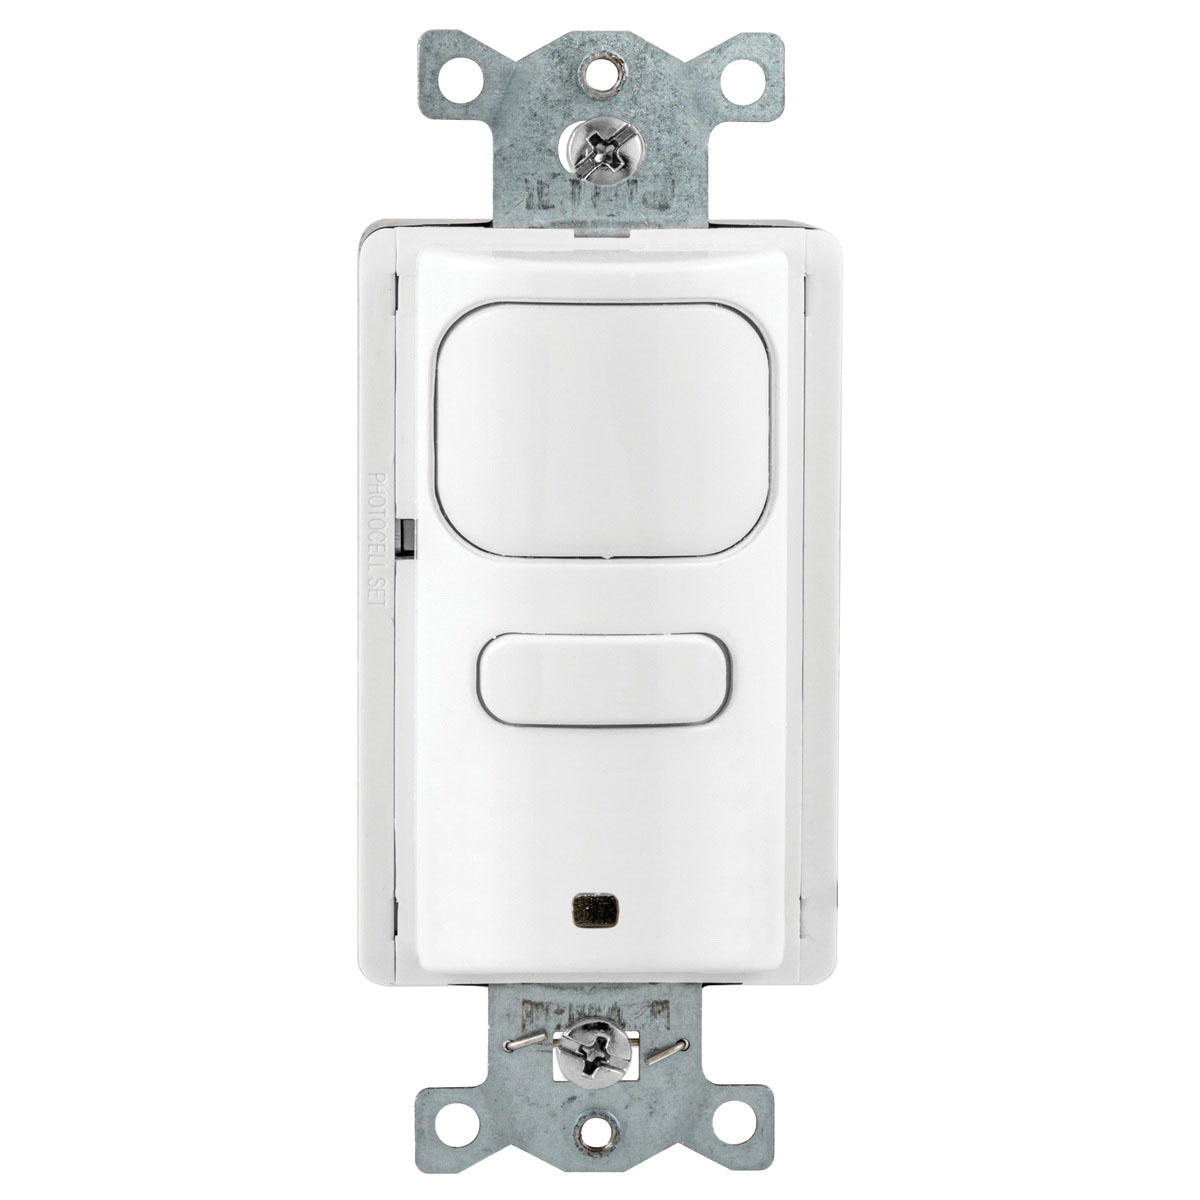 hight resolution of hubbell wiring ap2000w1 adaptive technology manual auto passive infrared wall switch sensor 1000